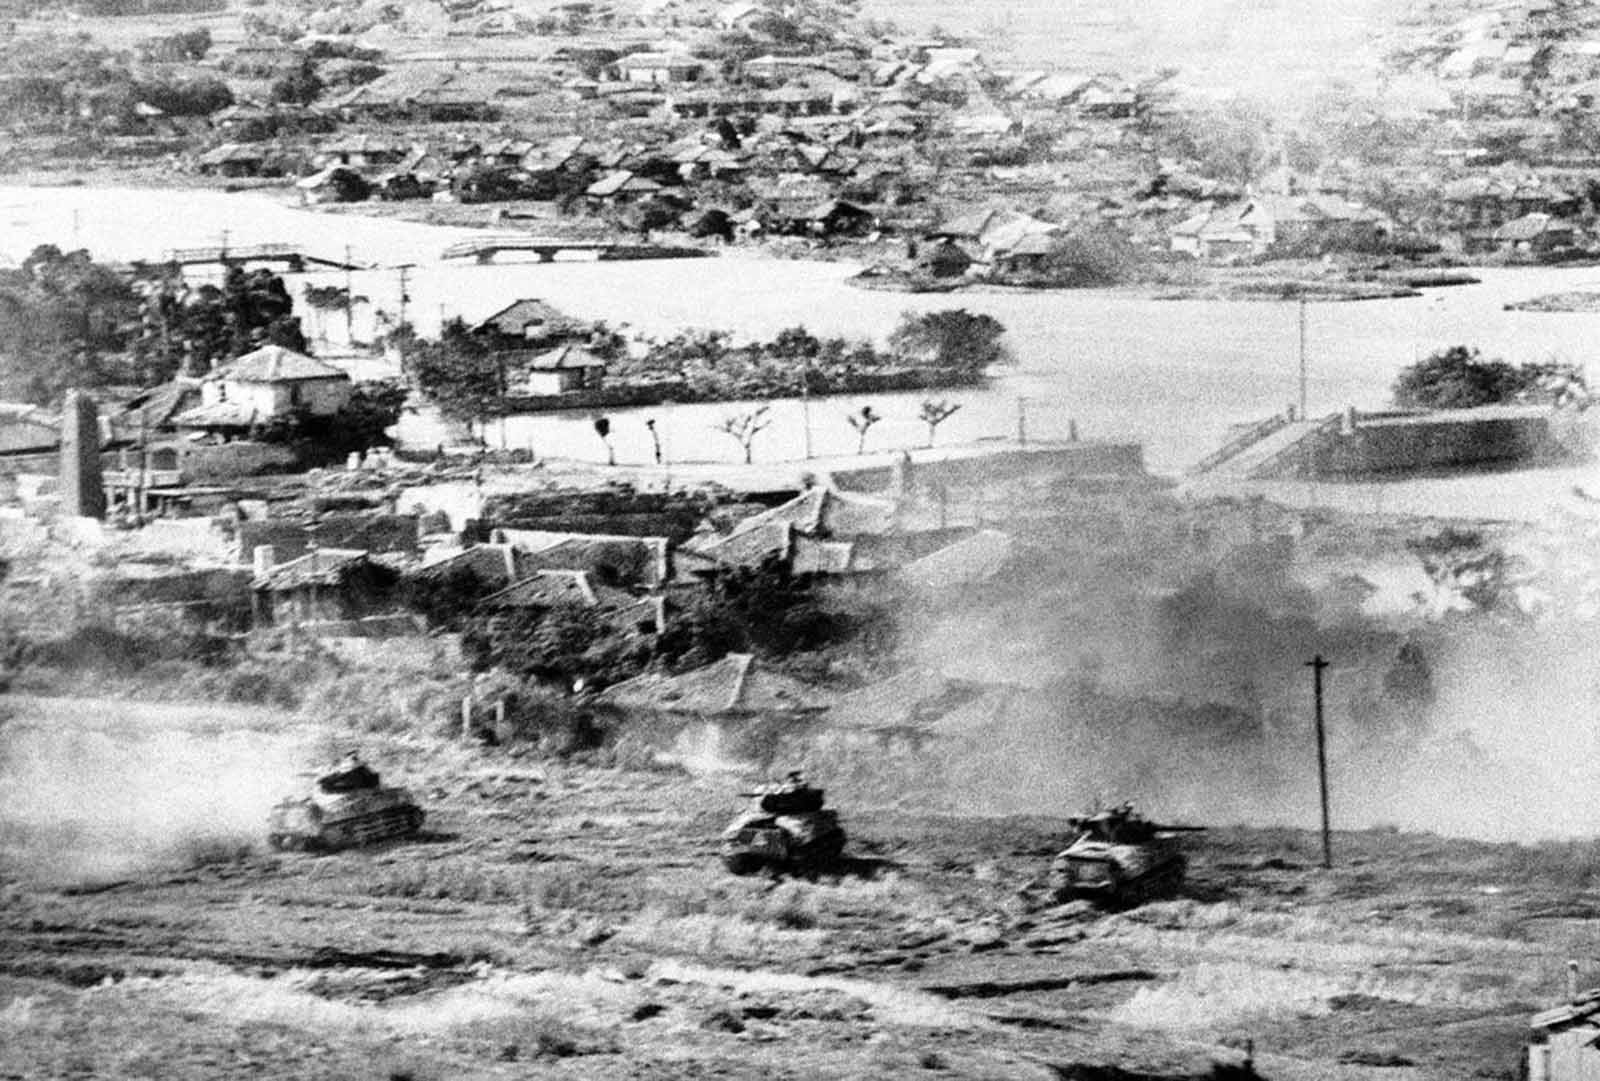 Tanks of the Sixth Marine Division probe the outskirts of Naha, capital city of Okinawa, Japan, on May 27, 1945.